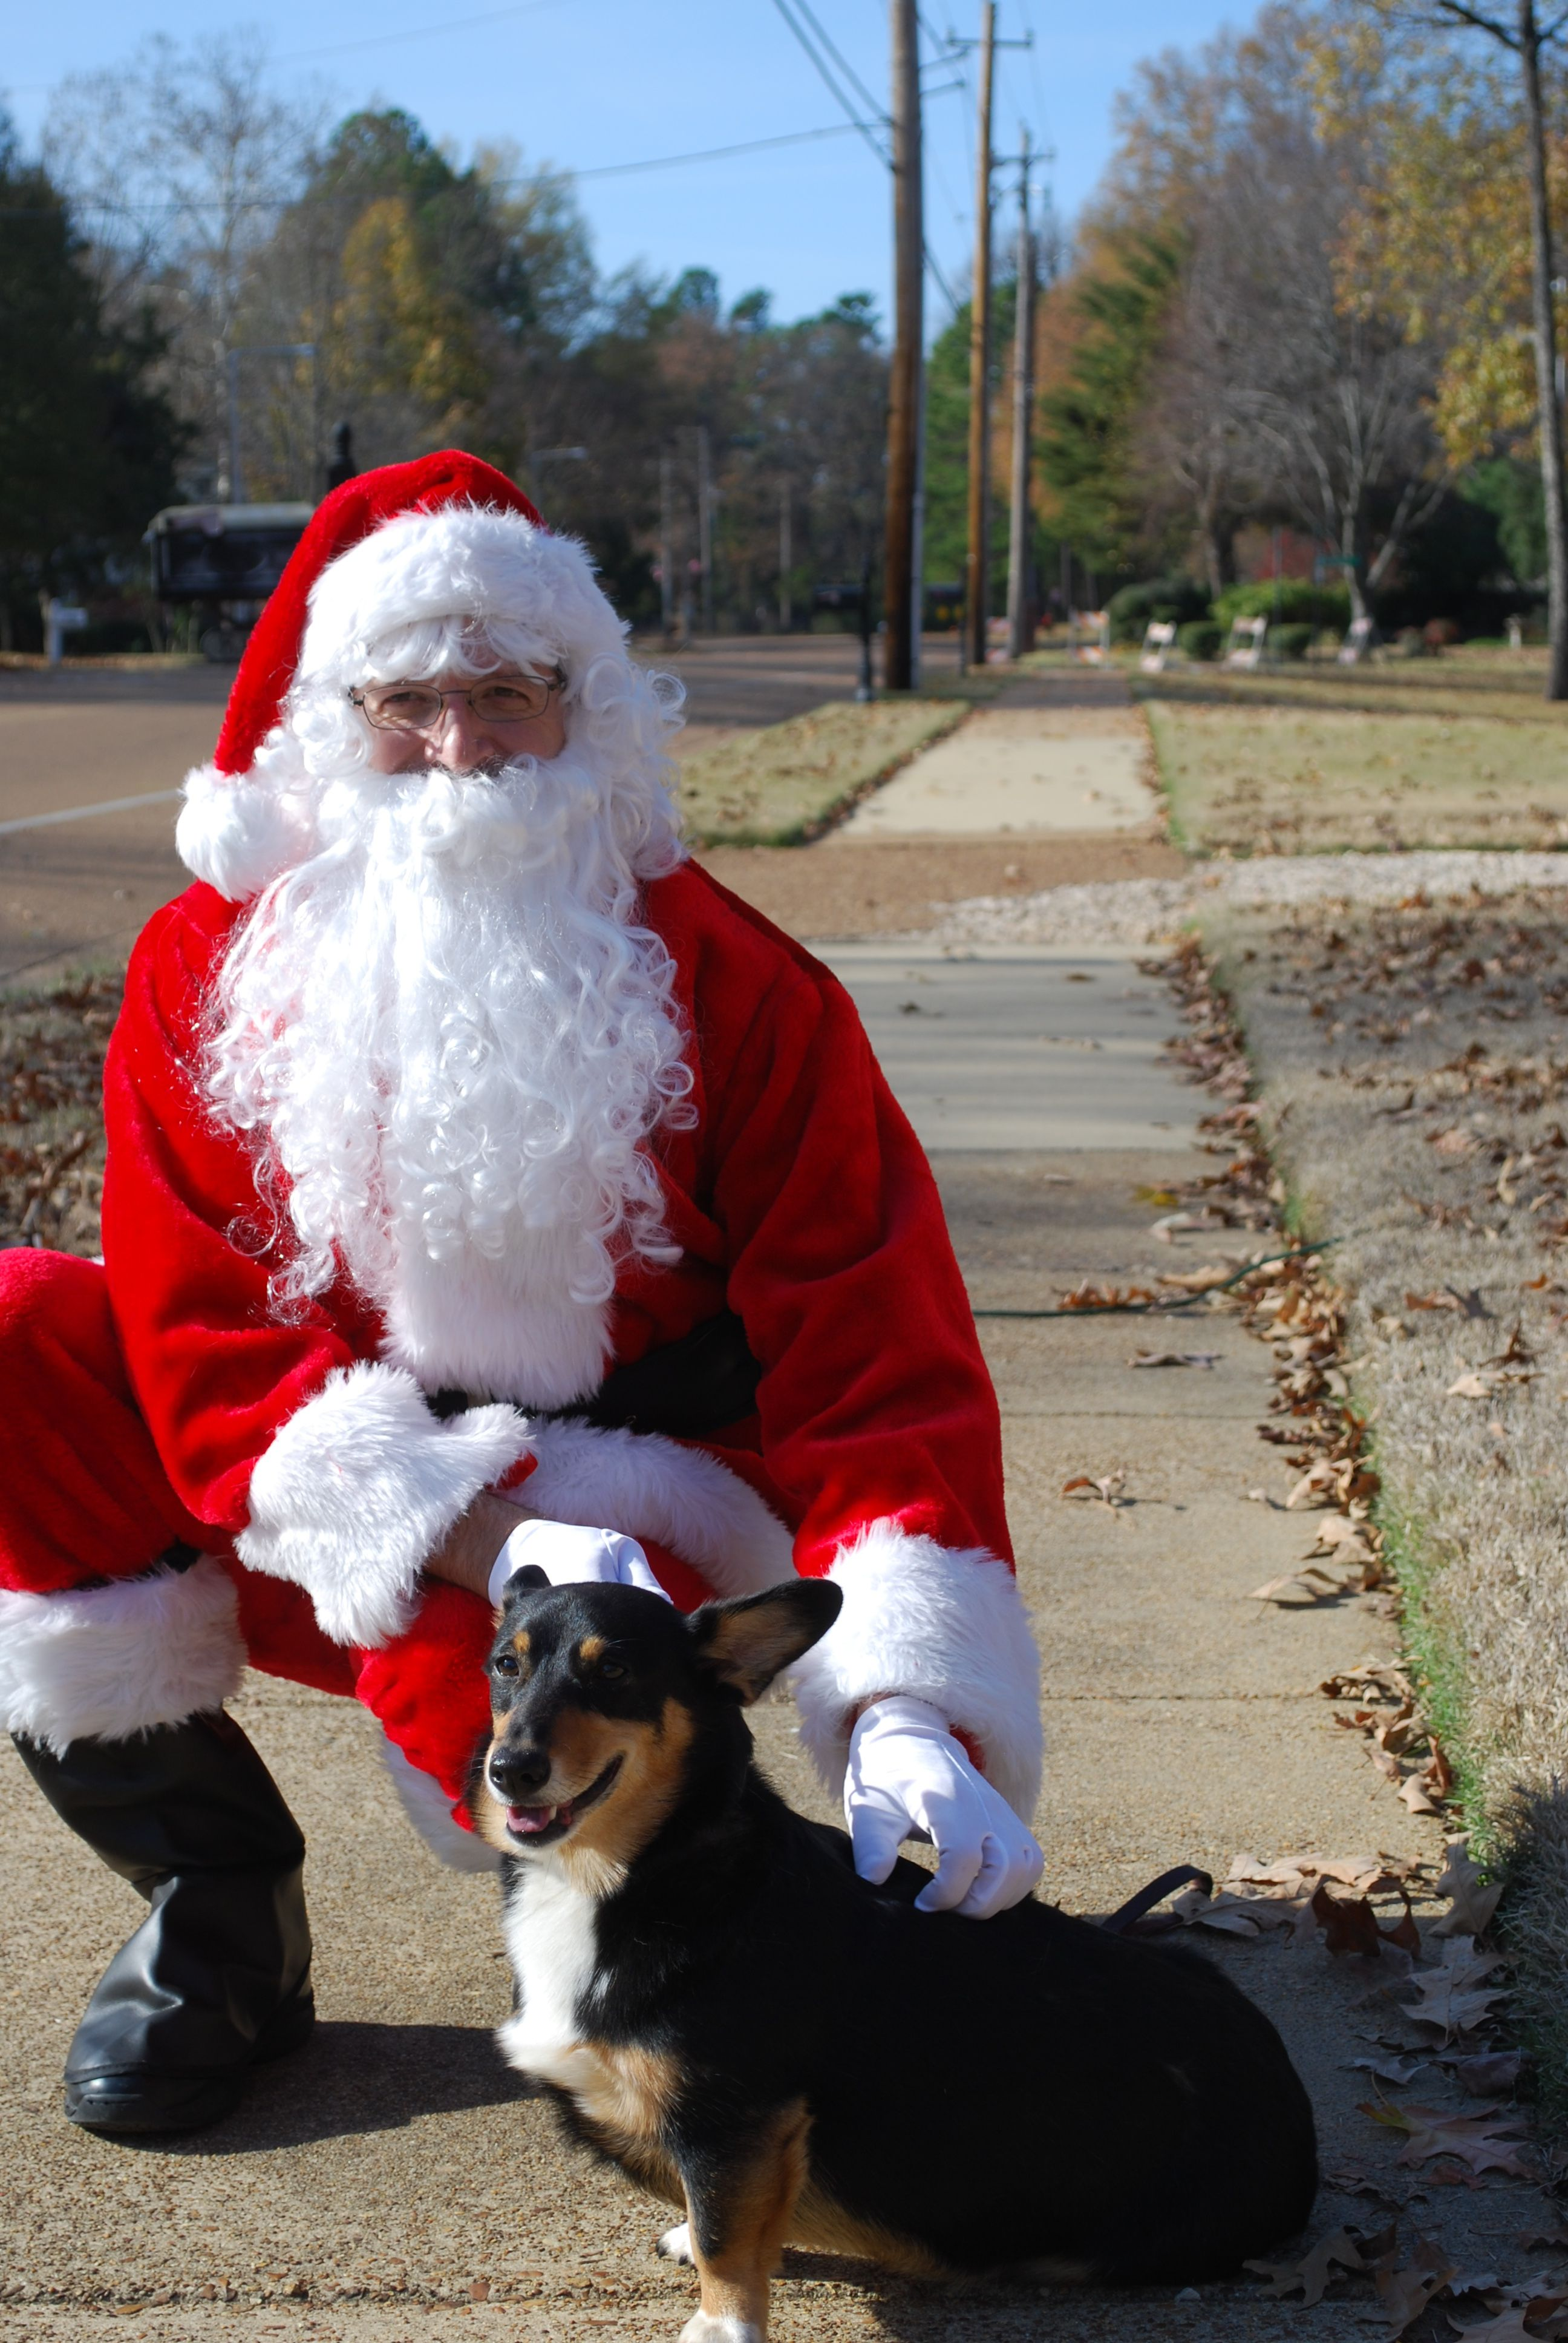 Koko knows she has been good.  She is posing with Santa.